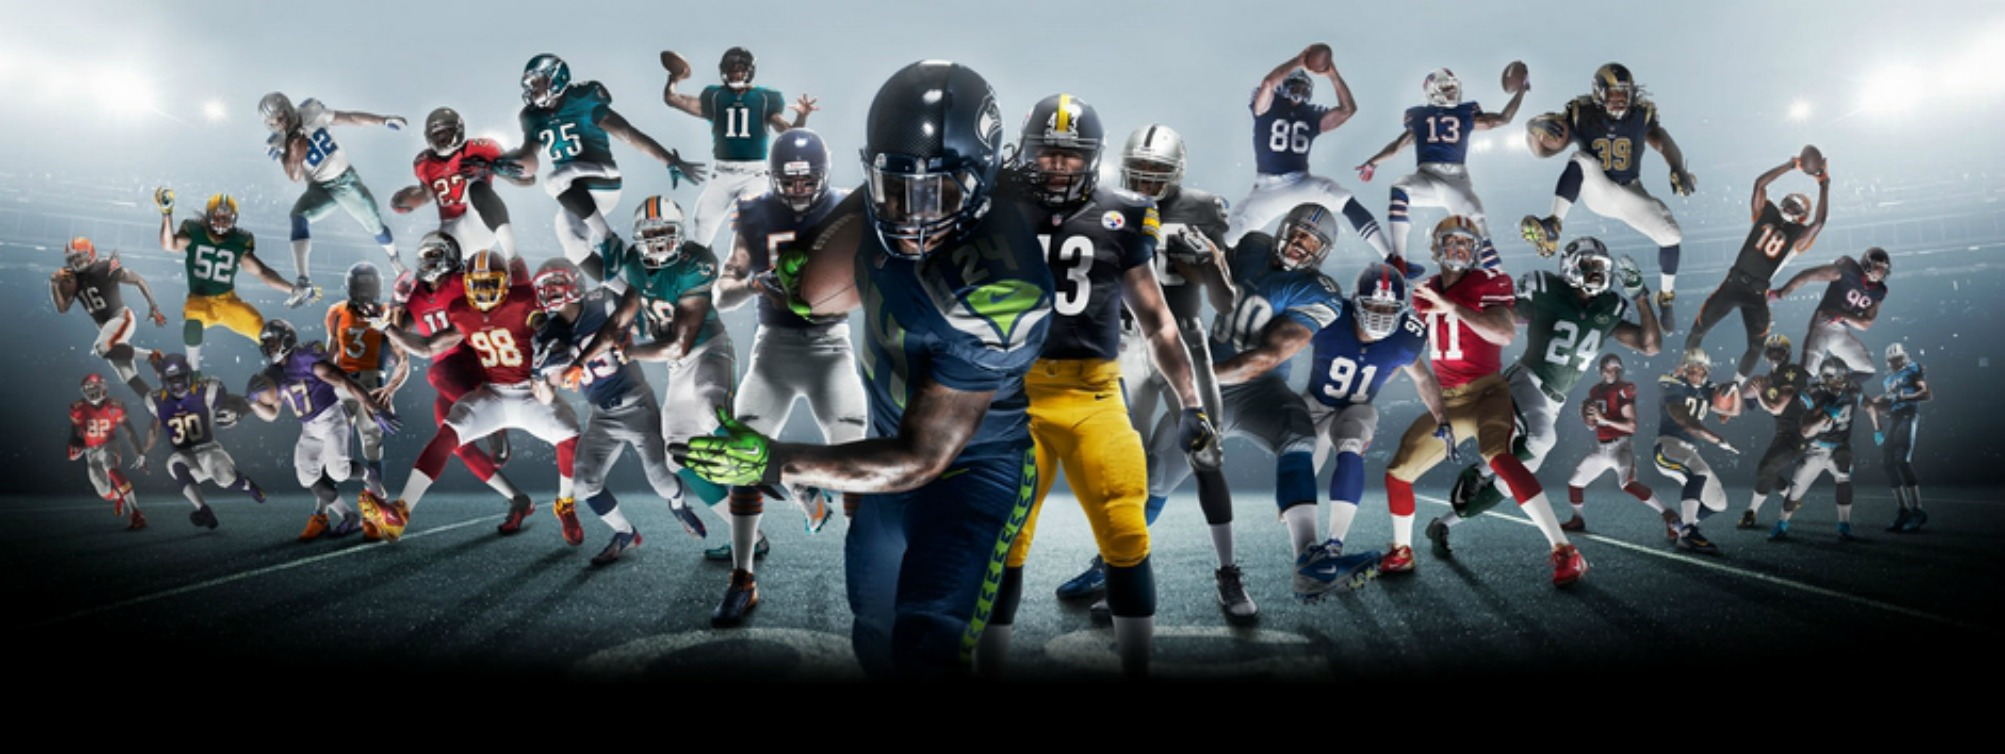 Cool Wallpapers Football